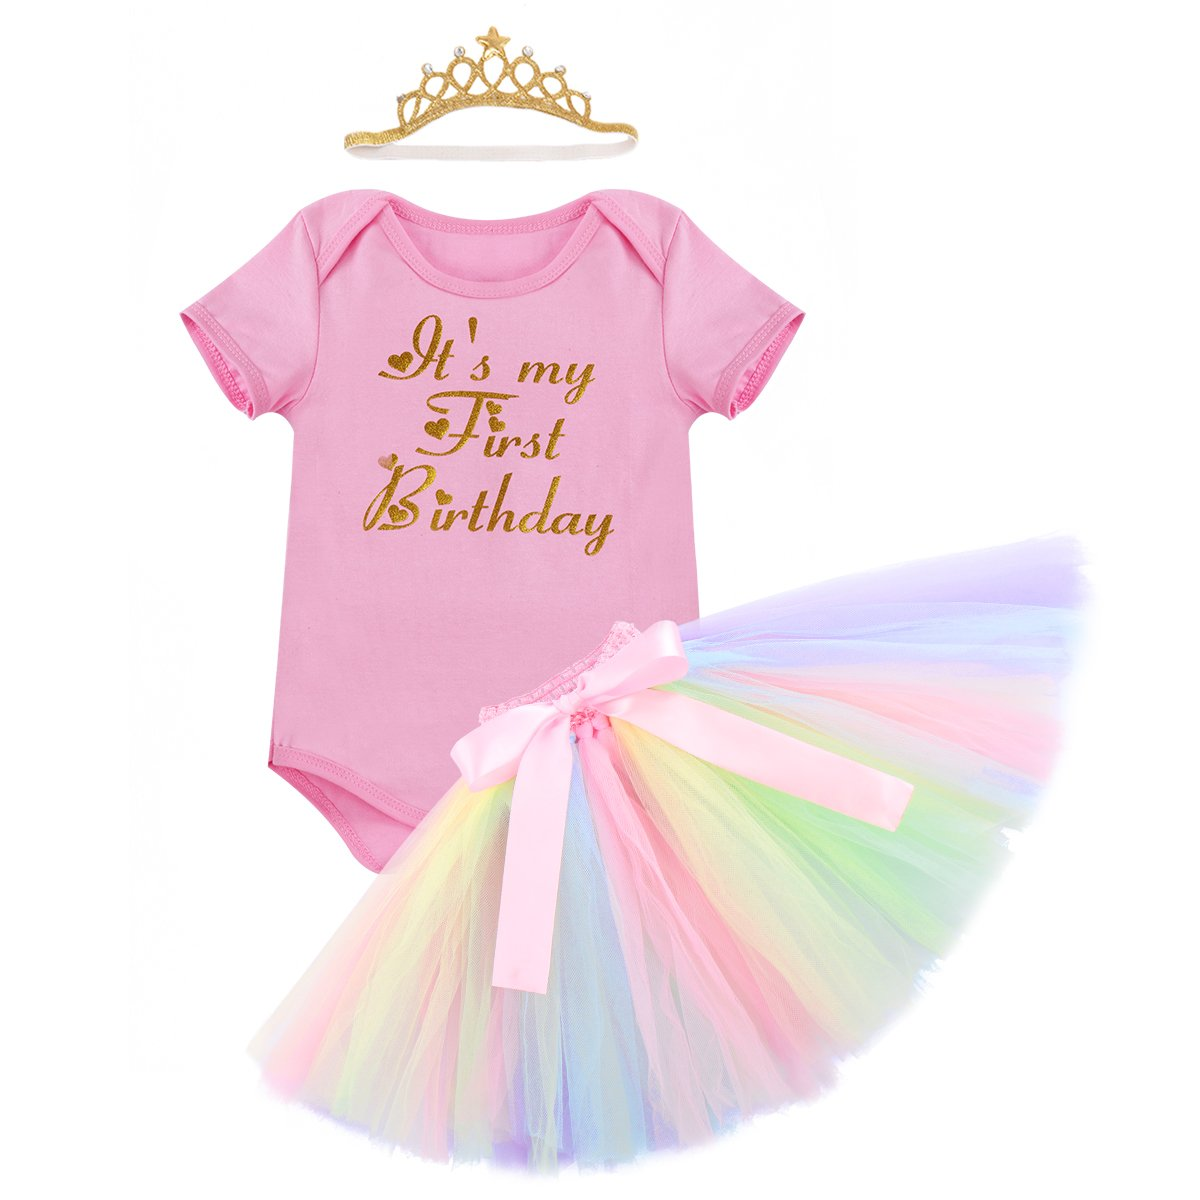 Cake Smash Outfits Newborn Baby Girls It\'s My 1st Birthday Unicorn Shiny Printed Romper Suit Sequin Dress Princess Tulle Tutu Skirt with Headband Infant Toddler Kids 3PCS Costume Set for Photo Shoot